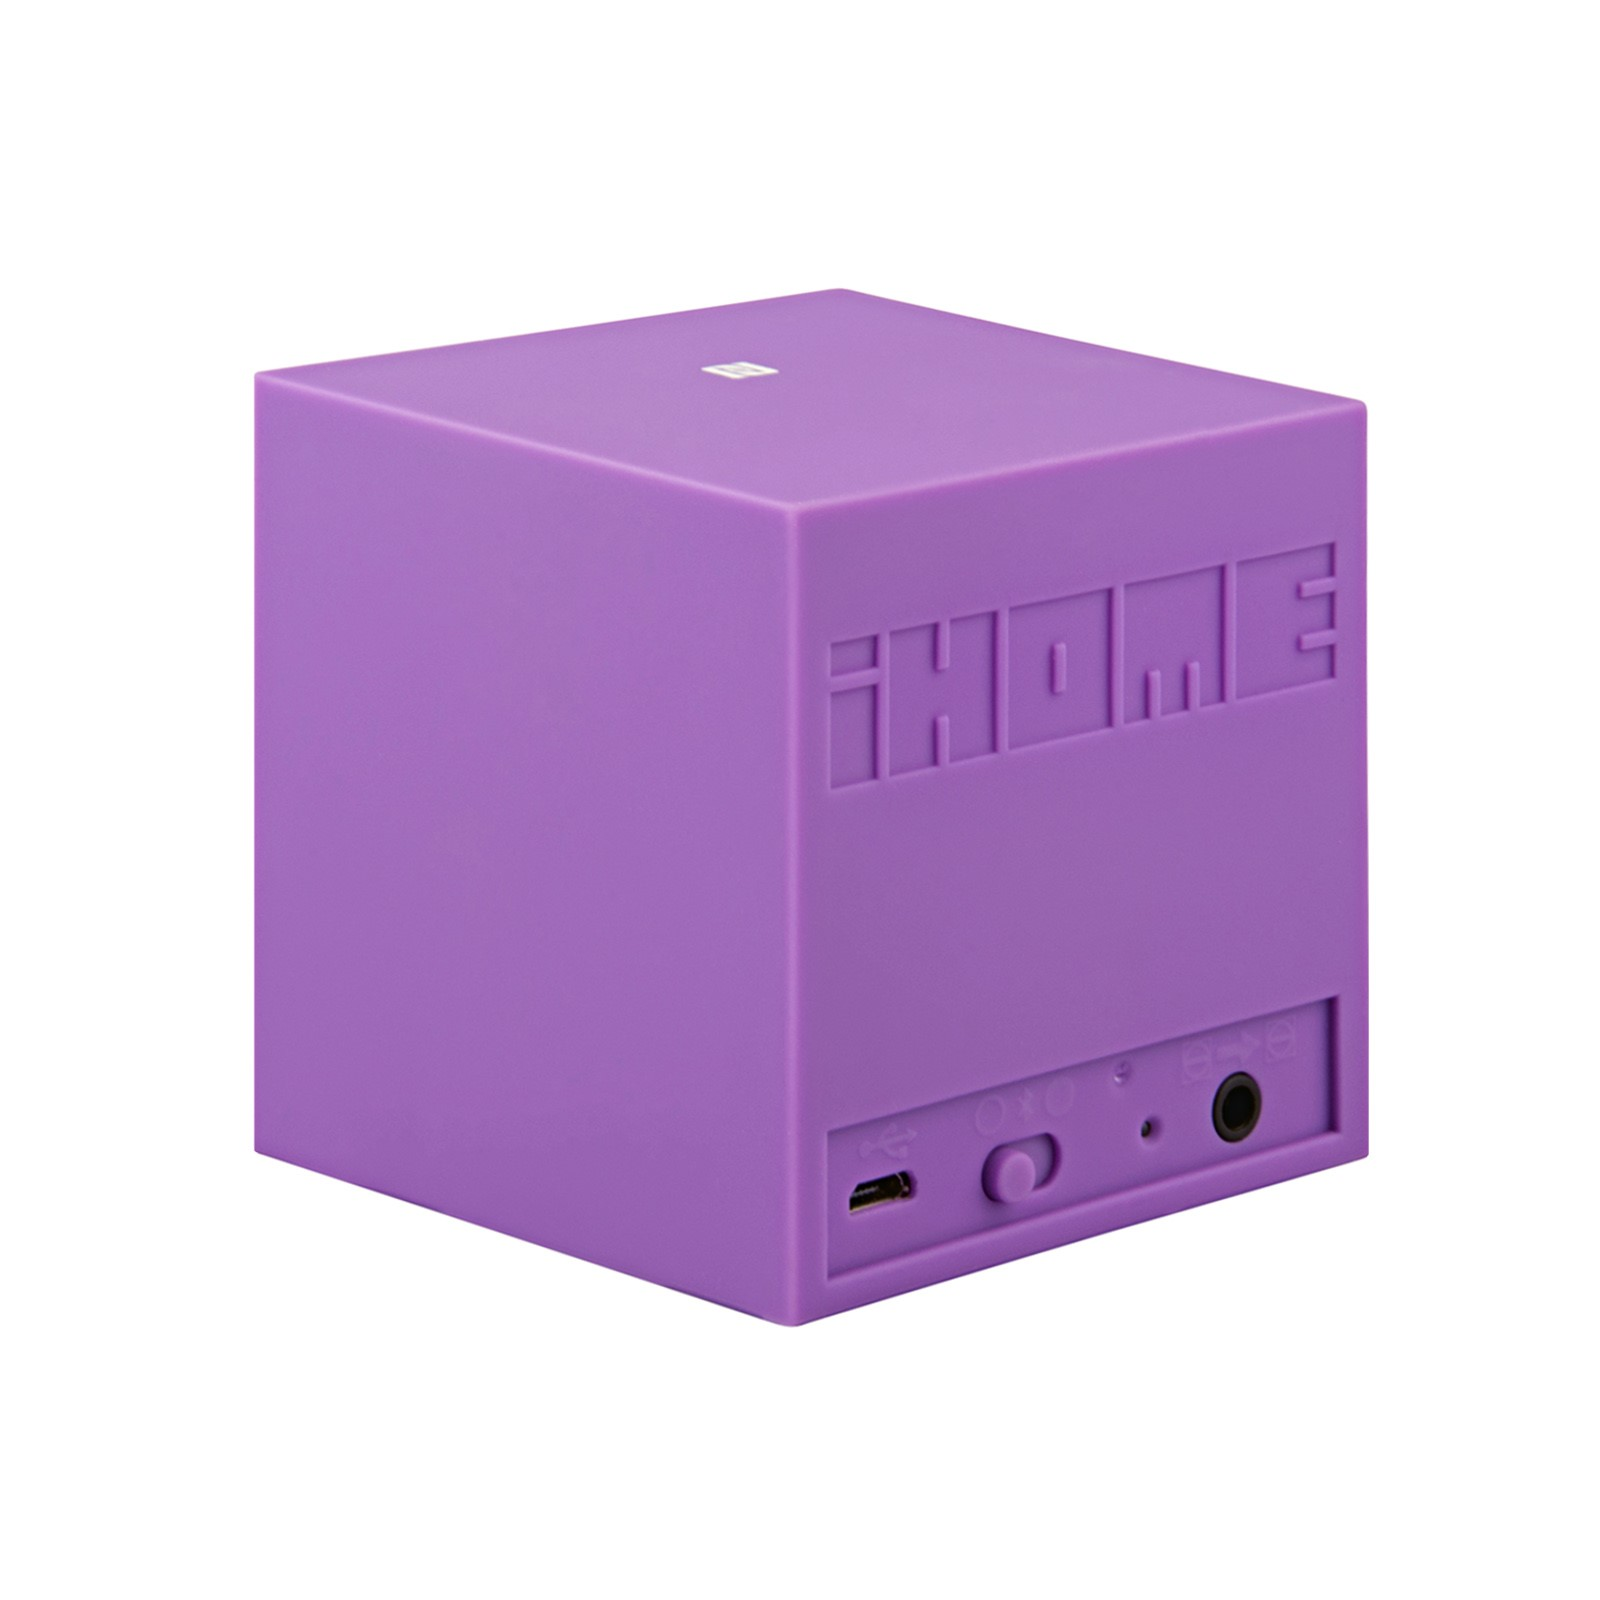 Ihome Bluetooth Portable Speaker: IHome IBT16 Portable Rechargeable Bluetooth Speaker With 3.5mm Jack / Line Out